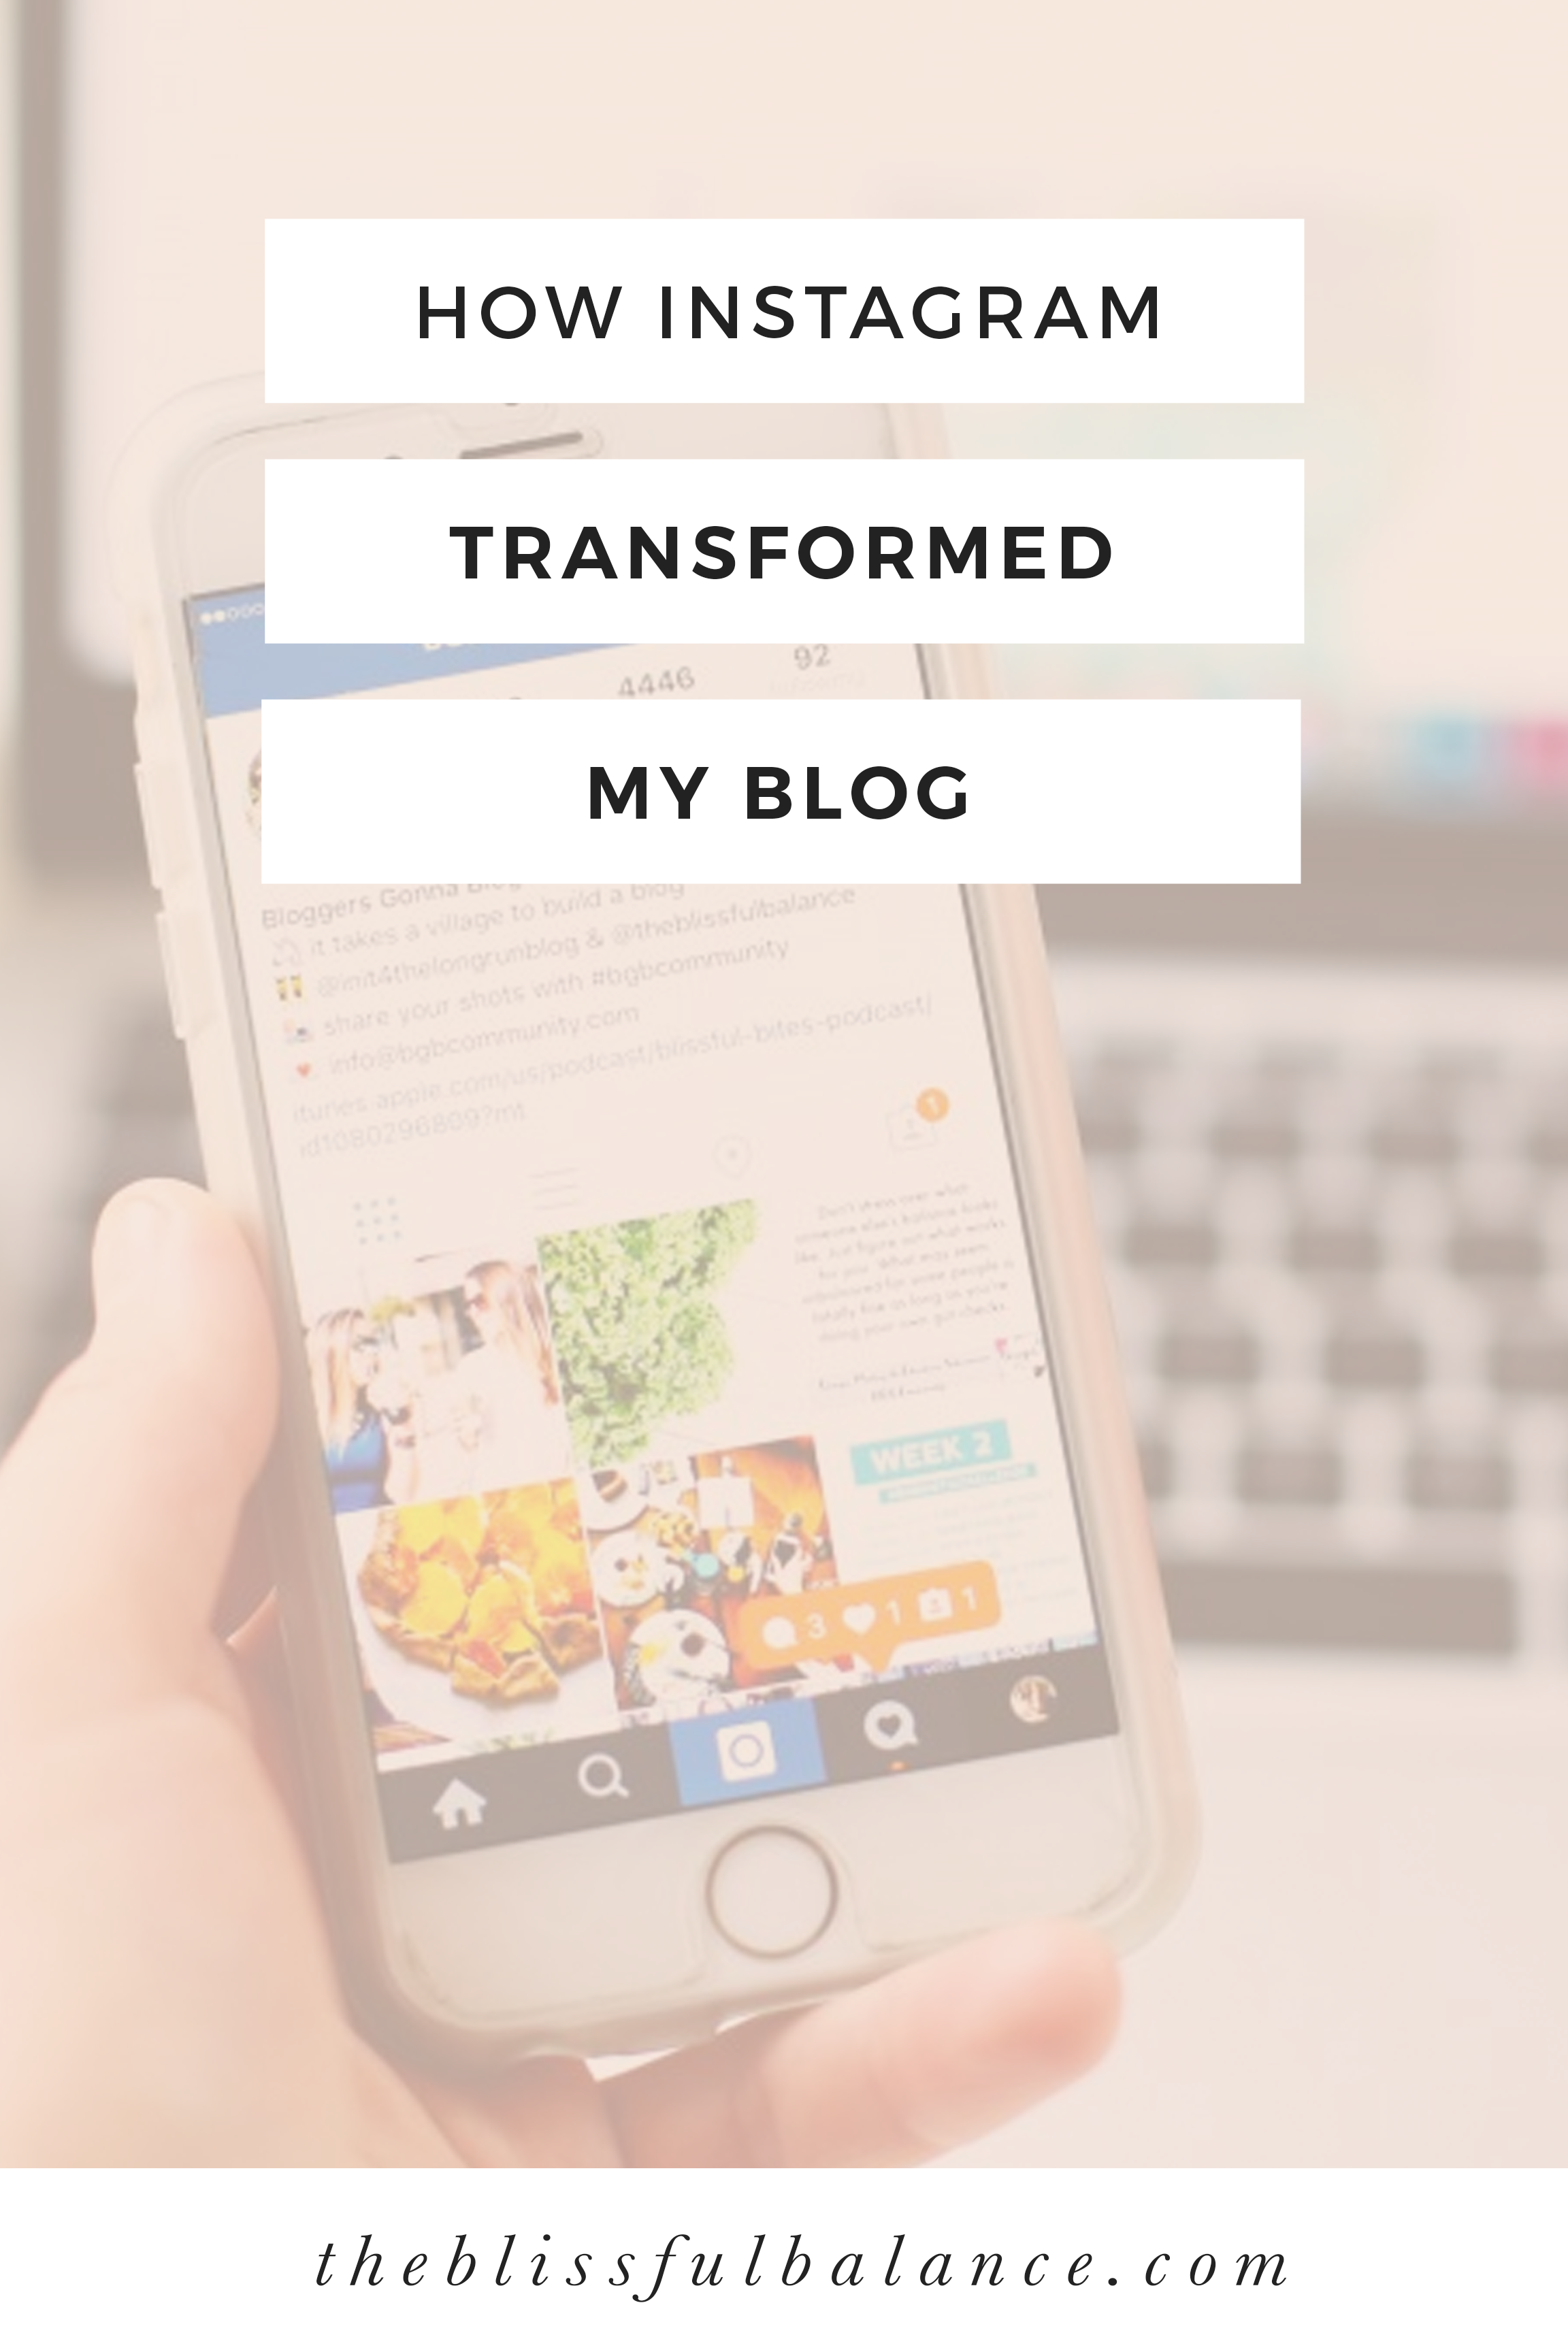 How Instagram Transformed My Blog